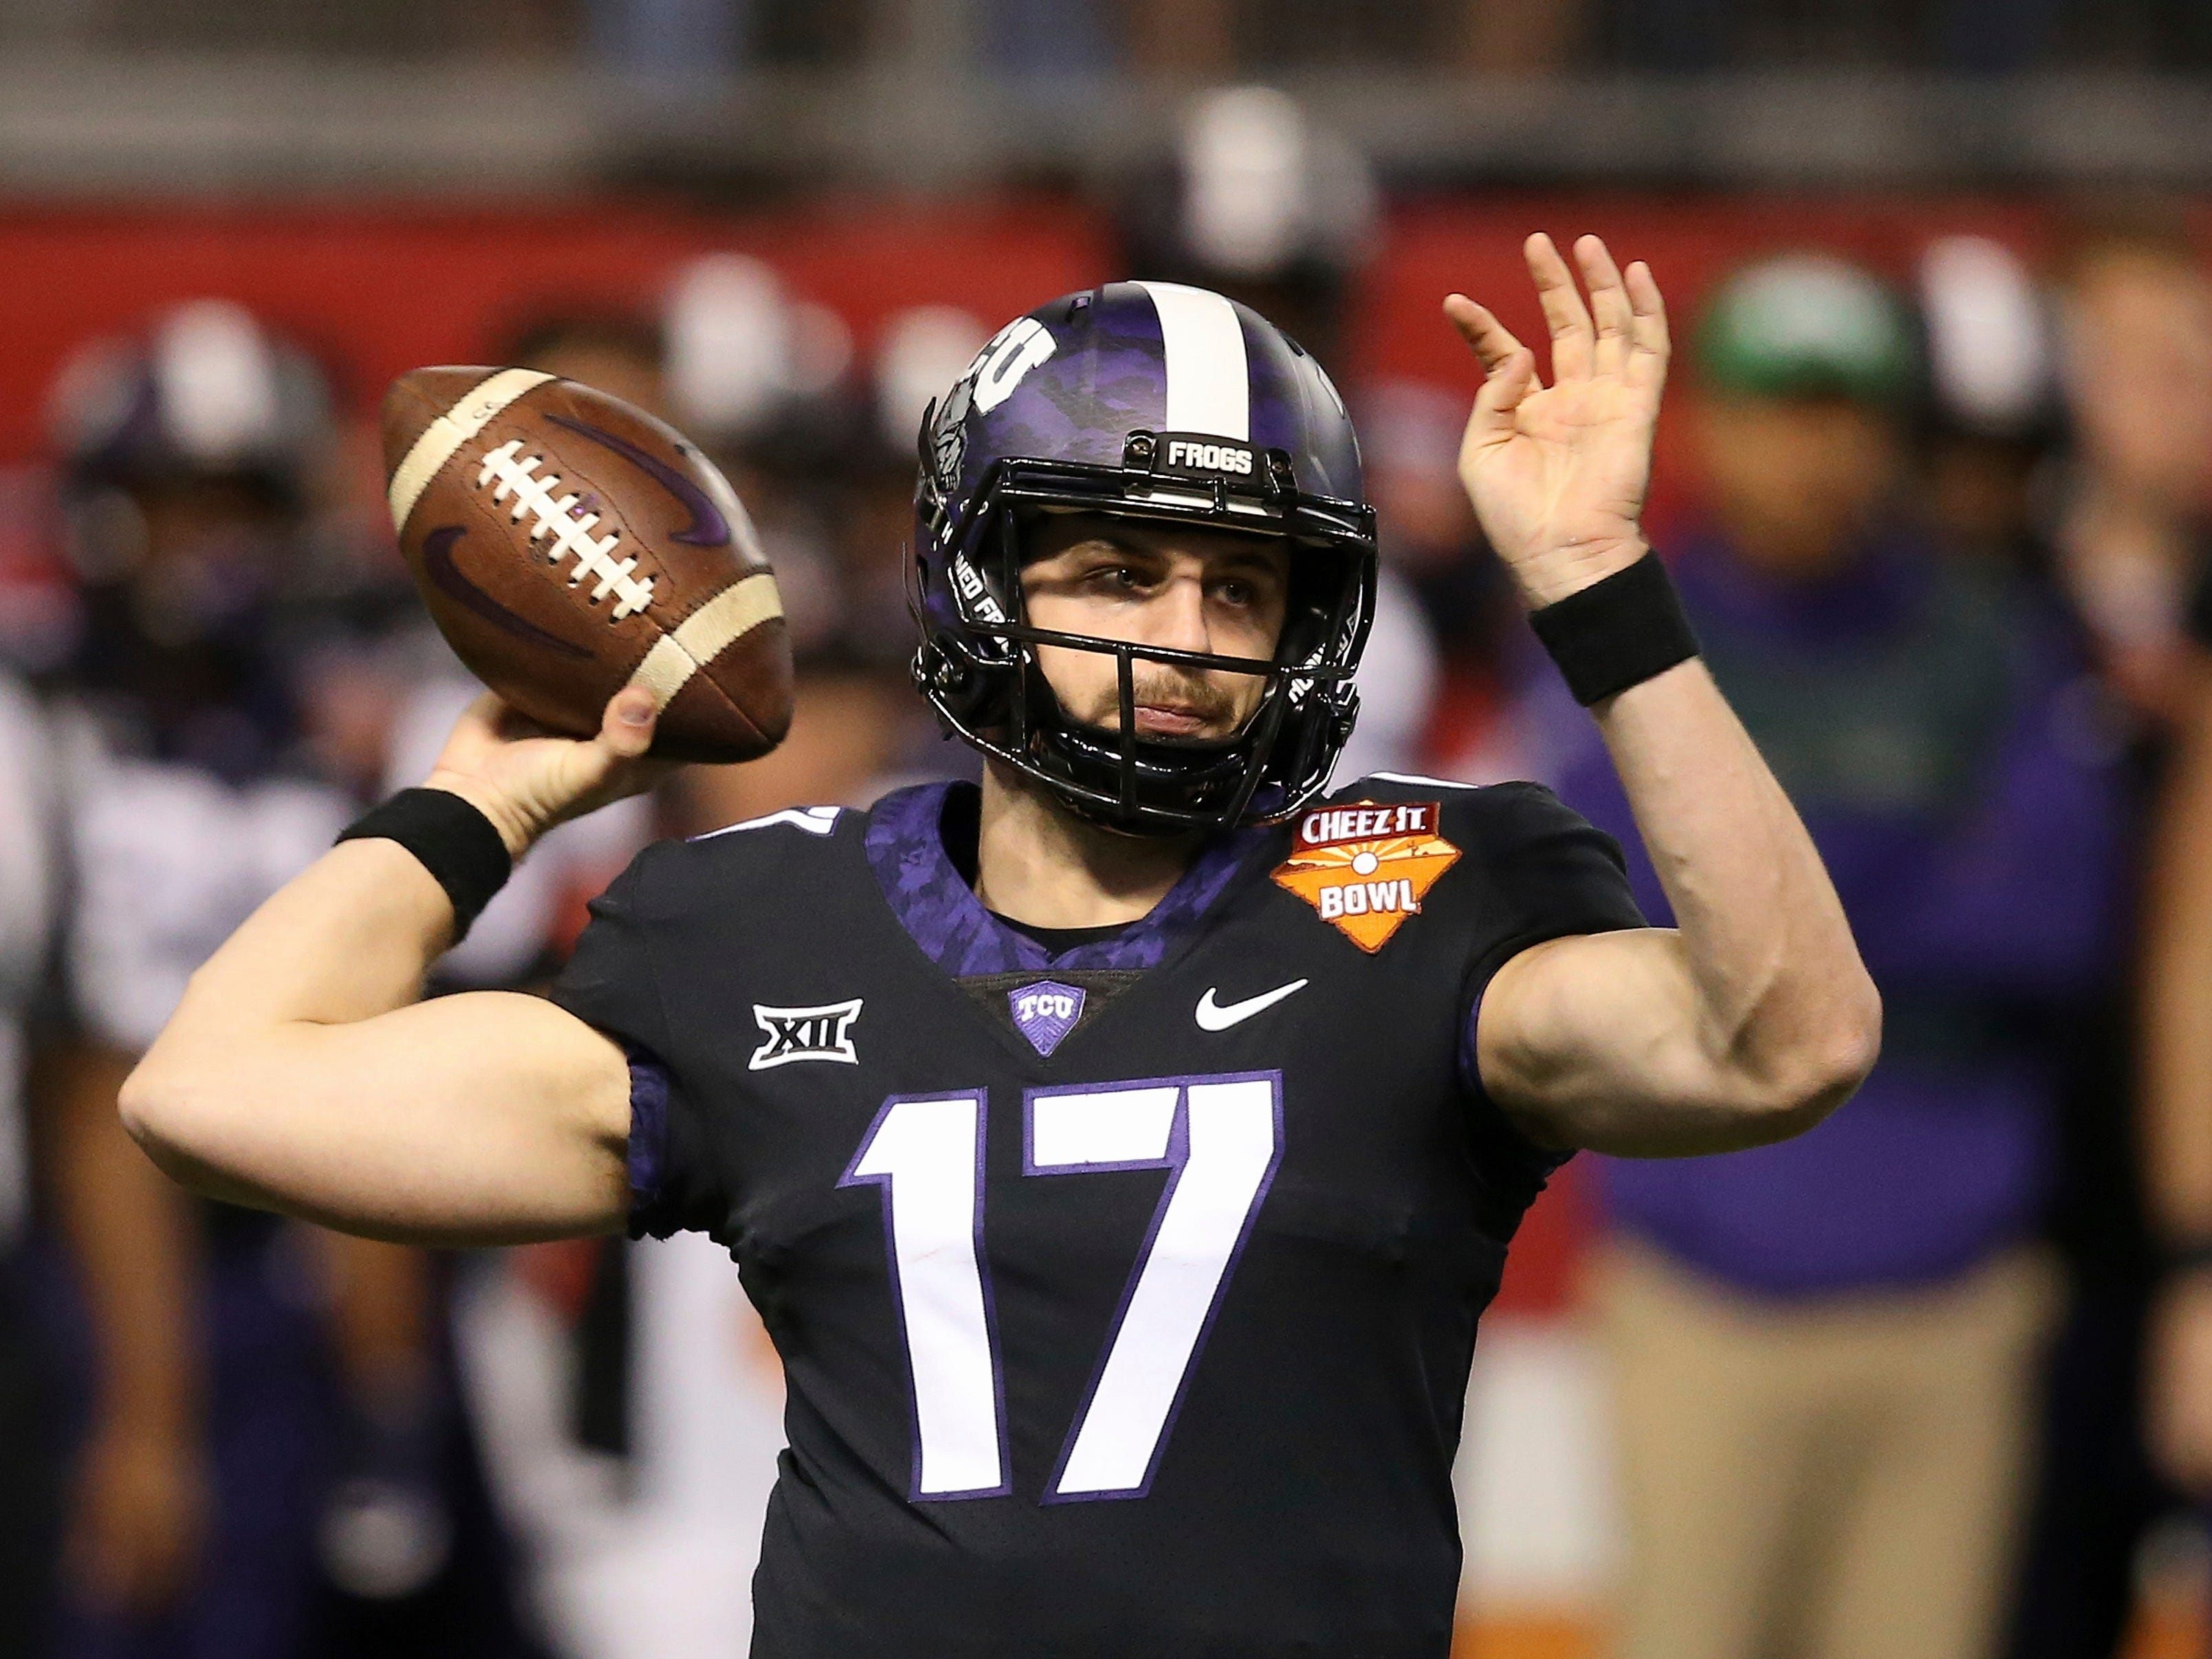 TCU quarterback Grayson Muehlstein throws a pass against California during the first half of the Cheez-It Bowl NCAA college football game Wednesday, Dec. 26, 2018, in Phoenix.